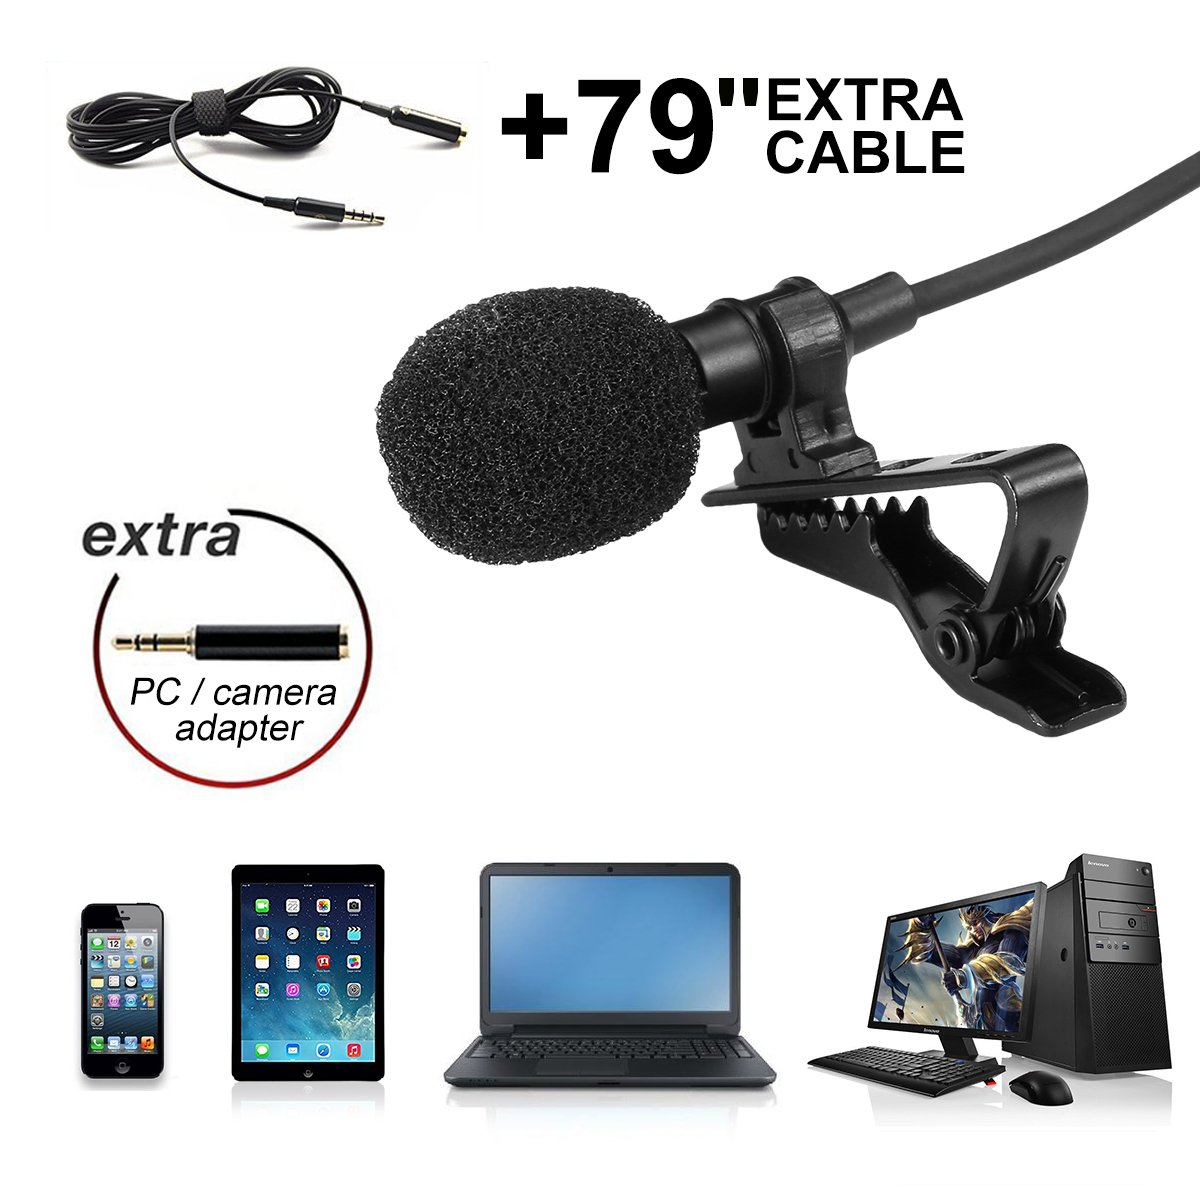 Lavalier Microphone,Hizek Professional Lavalier Lapel Mic with Clip On System for Recording Youtube, Interview,Conference,Podcast, iPhone,iPad,iPod,Android,Mac,PC(138''Long Cord) PC(138''Long Cord)